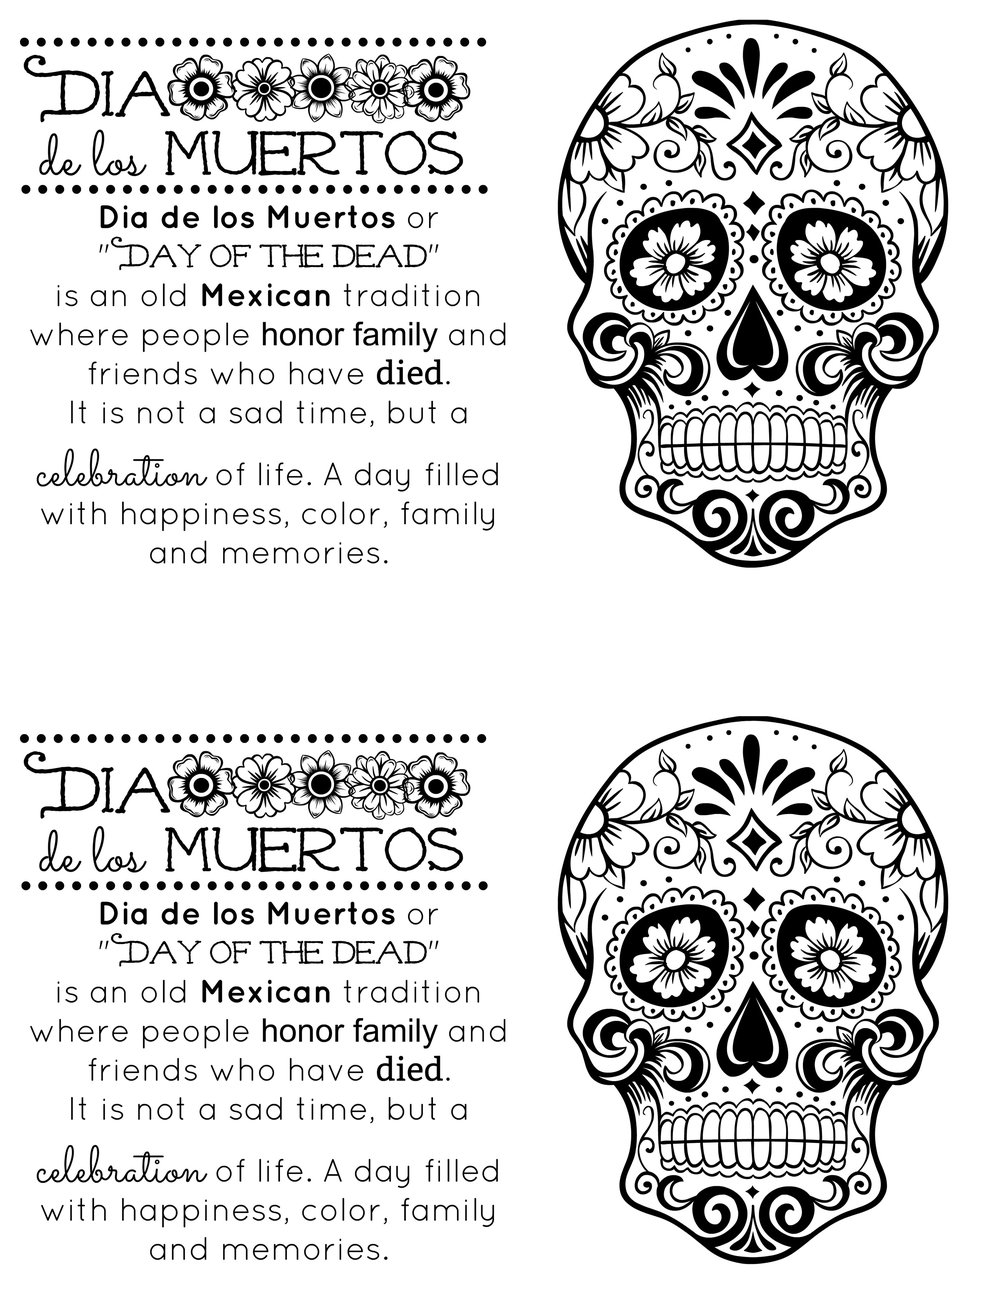 How to Share Dia de los Muertos with your classmates — KindaSillyMommy